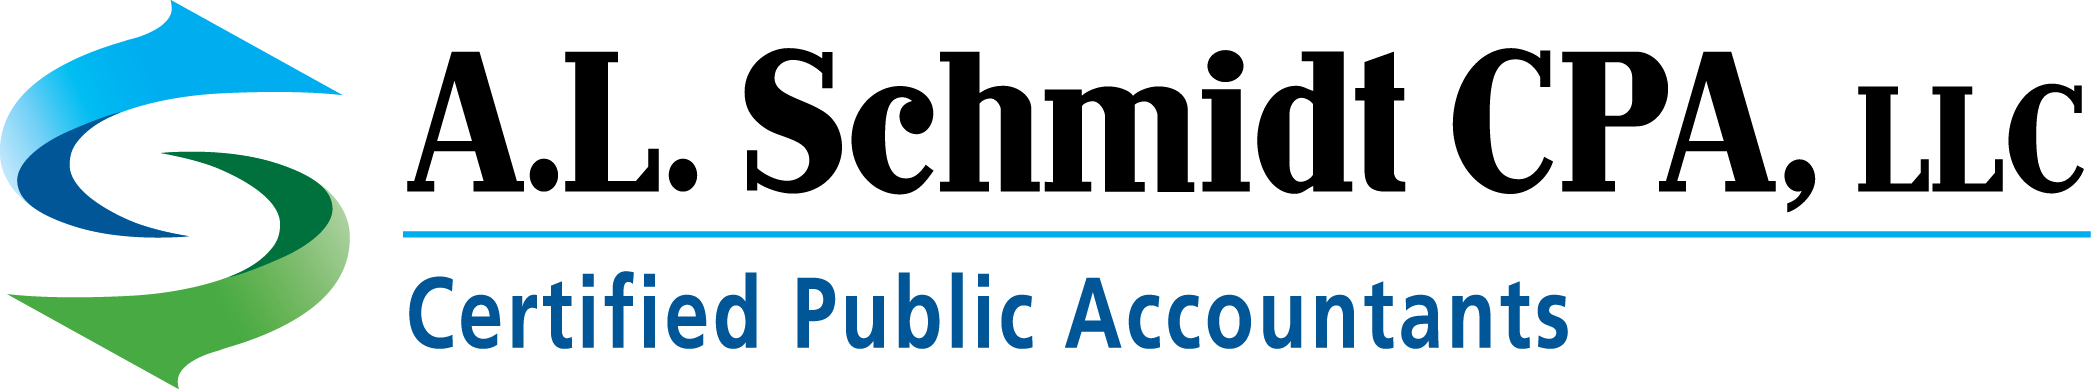 A. L. Schmidt CPA Accounting Advisory Services